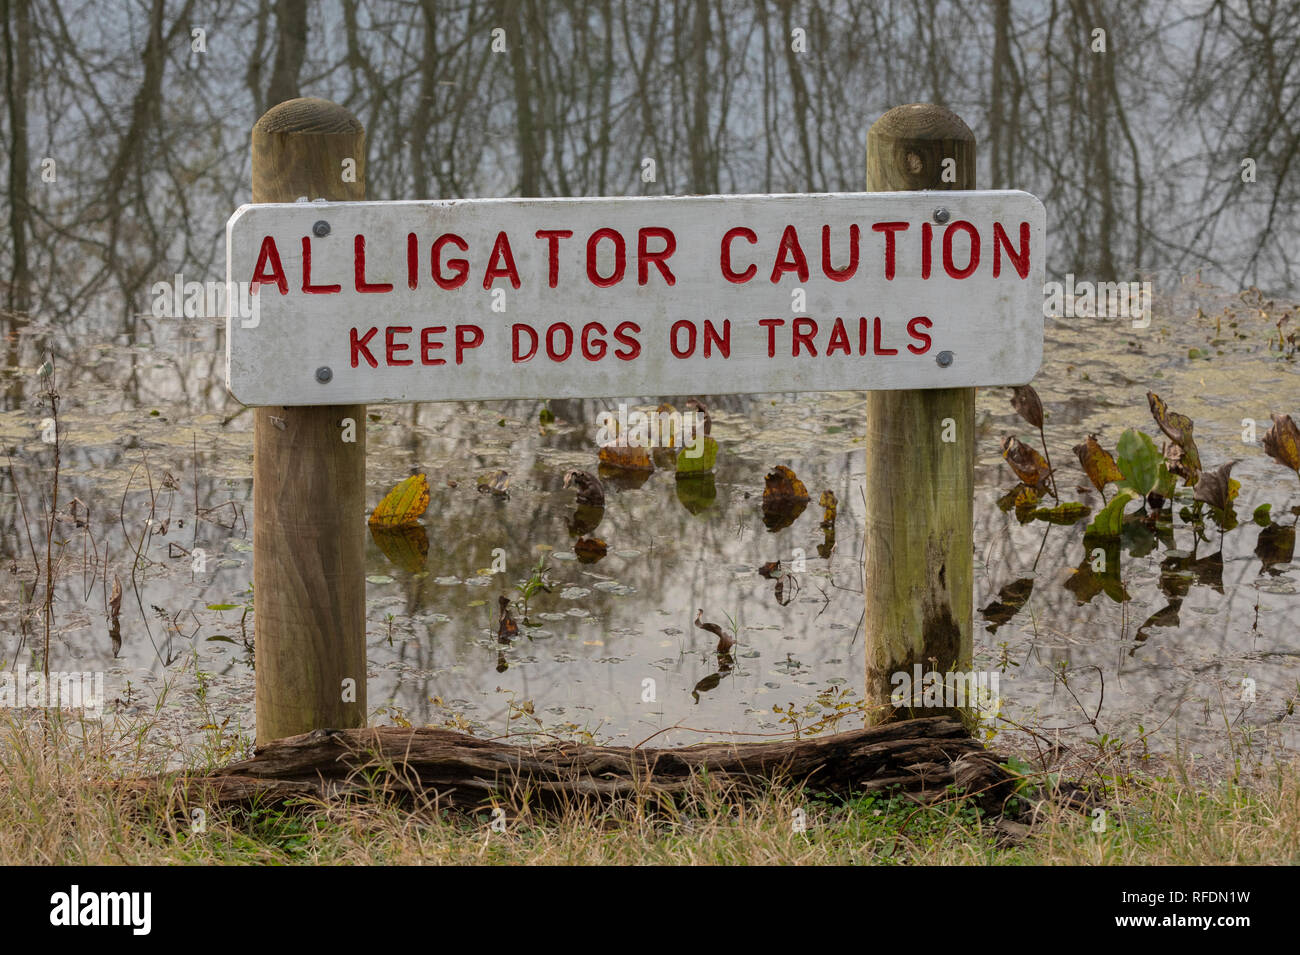 Alligator sign in Brazos Bend State Park, Texas. - Stock Image